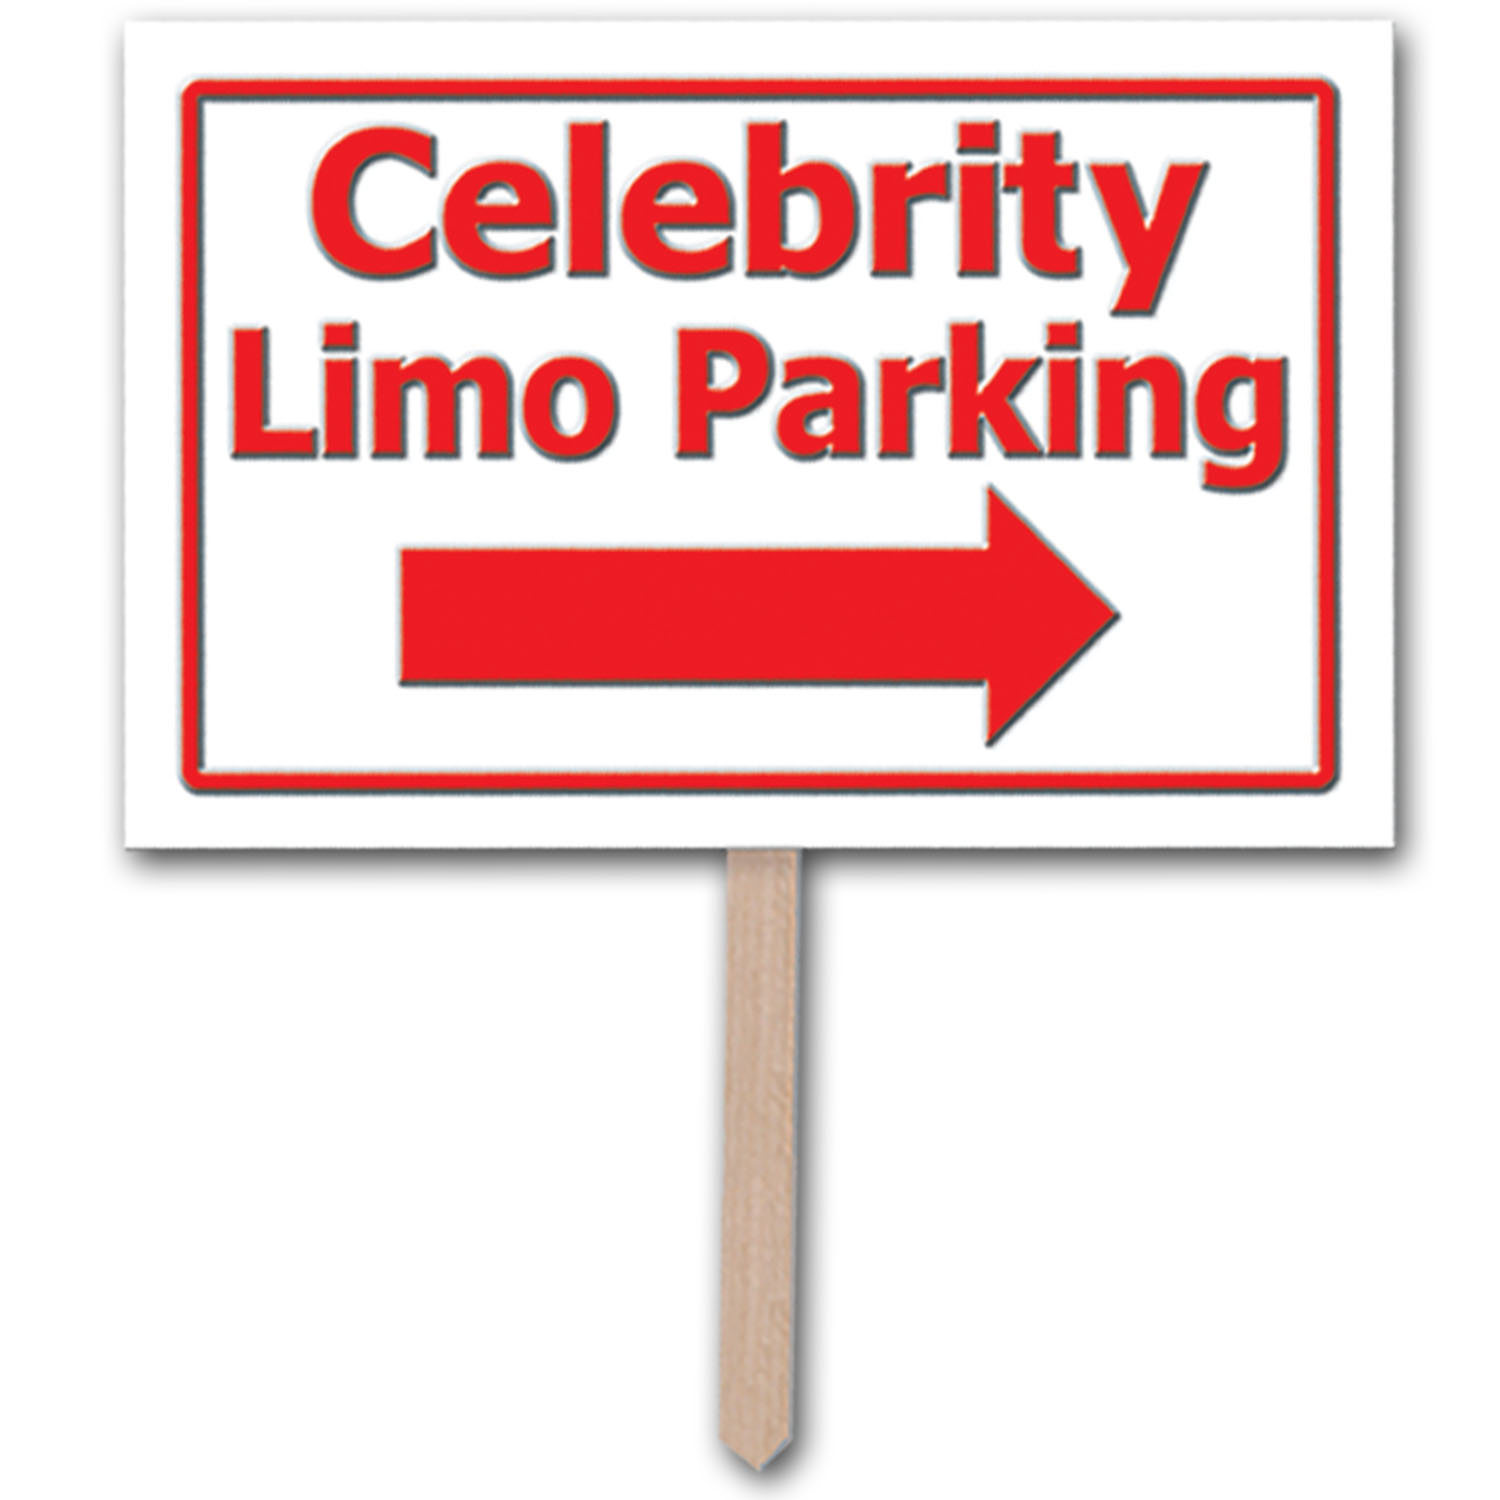 3-D Plastic Awards Night Yard Sign (Pack of 6) Limo, parking, yard sign, celebrity, awards night, famous, movies